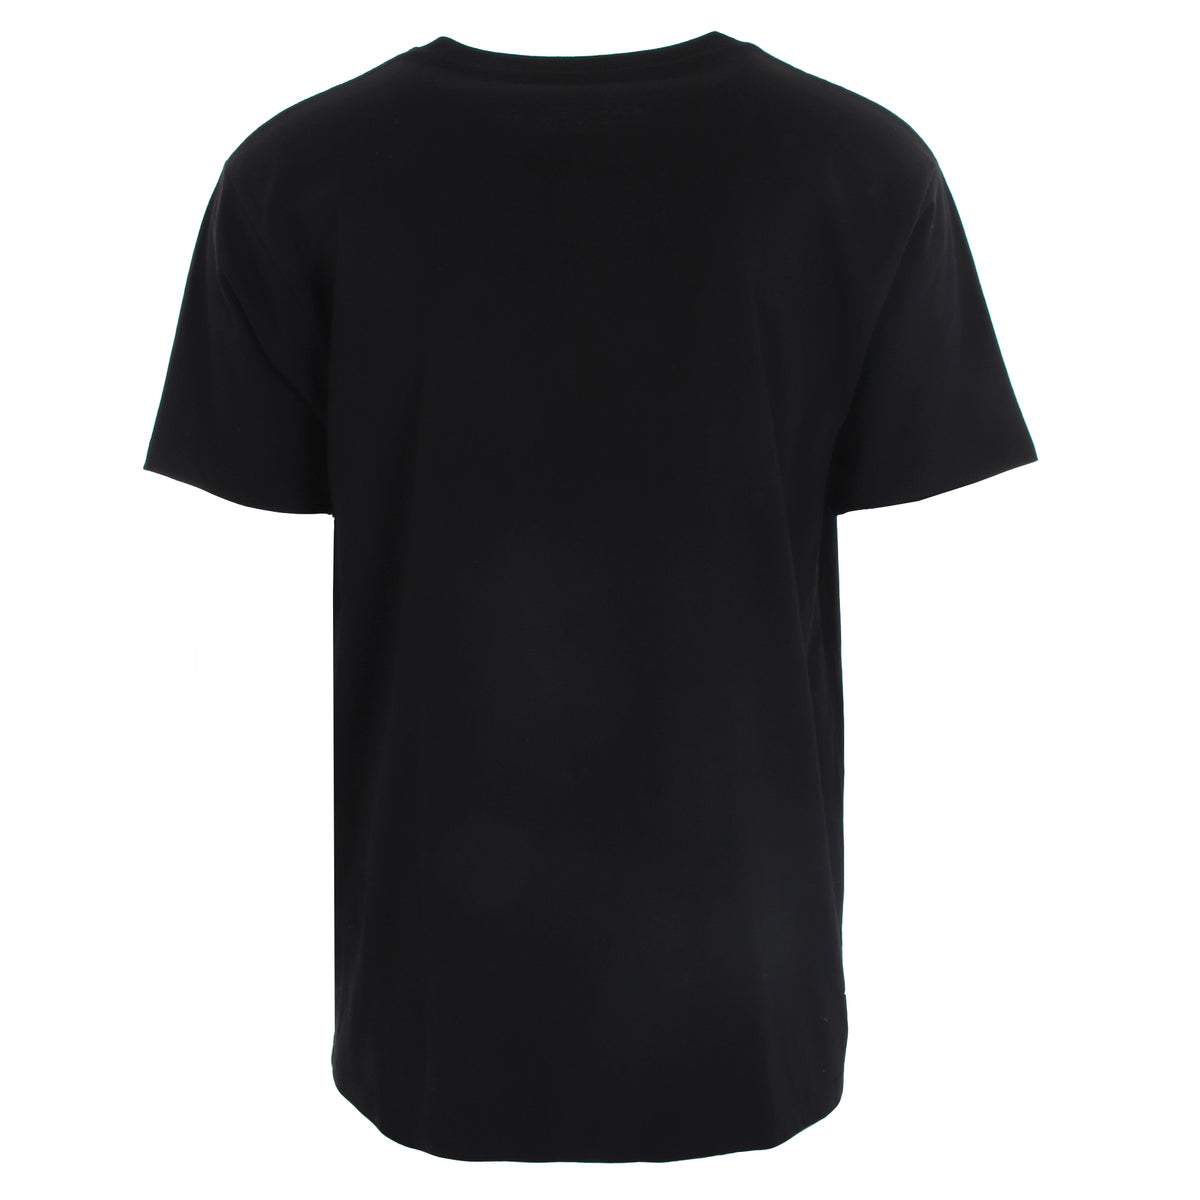 ARCTIC T SHIRT - BLACK/ WHITE MEN'S